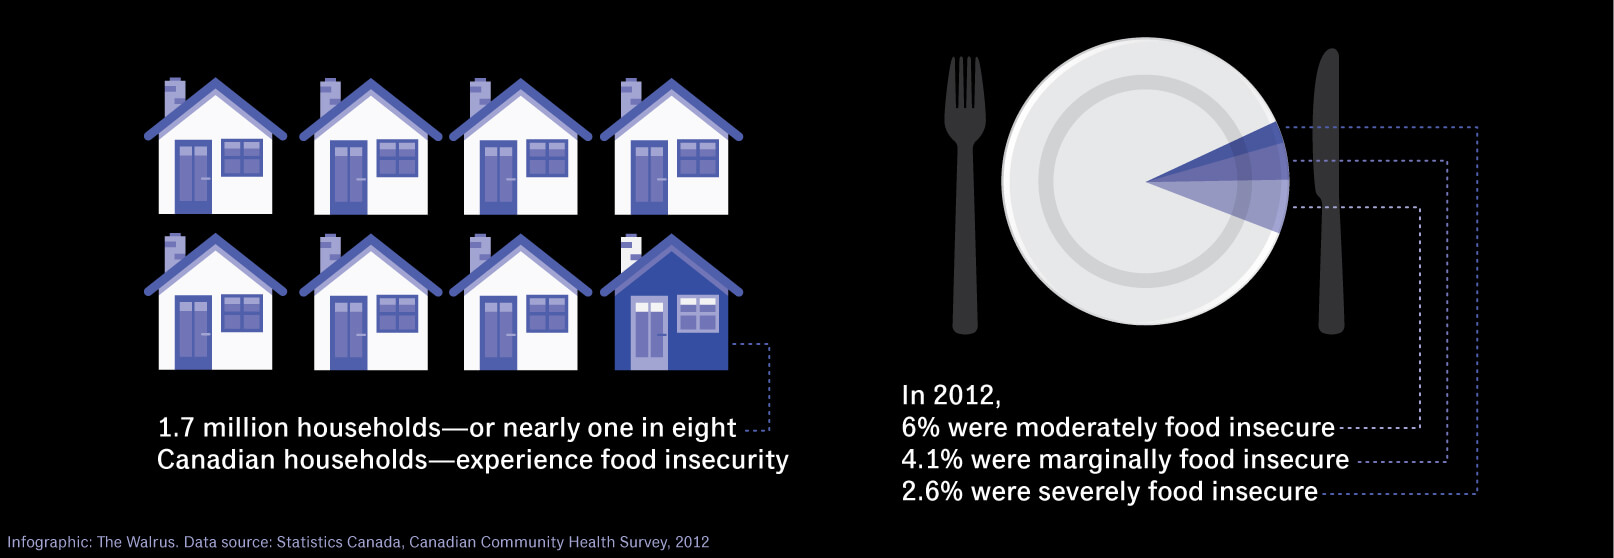 Nearly 1 in 8 Canadian households experience food insecurity.